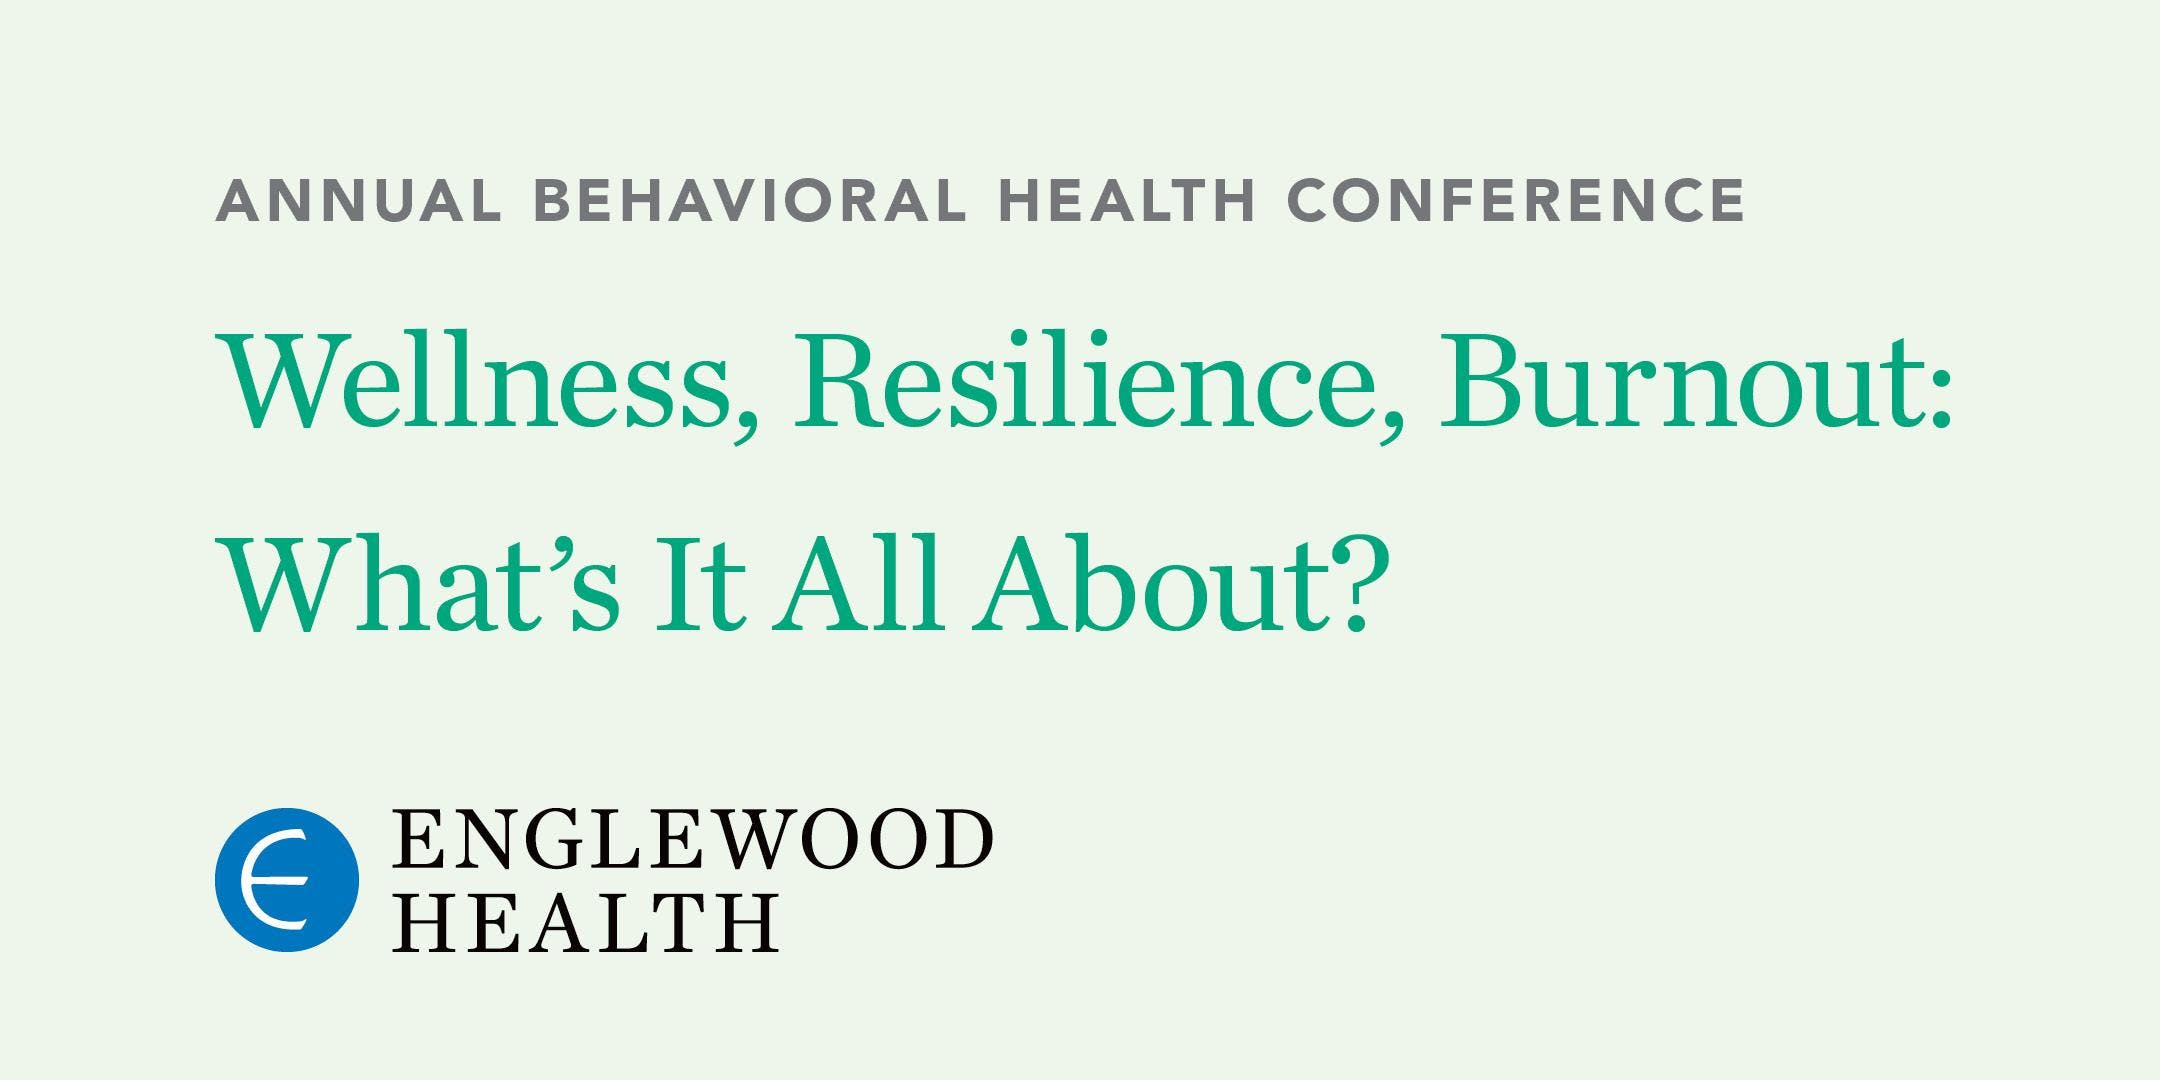 More info: Annual Behavioral Health Conference 2019: Wellness, Resilience, Burnout: What's It All About?